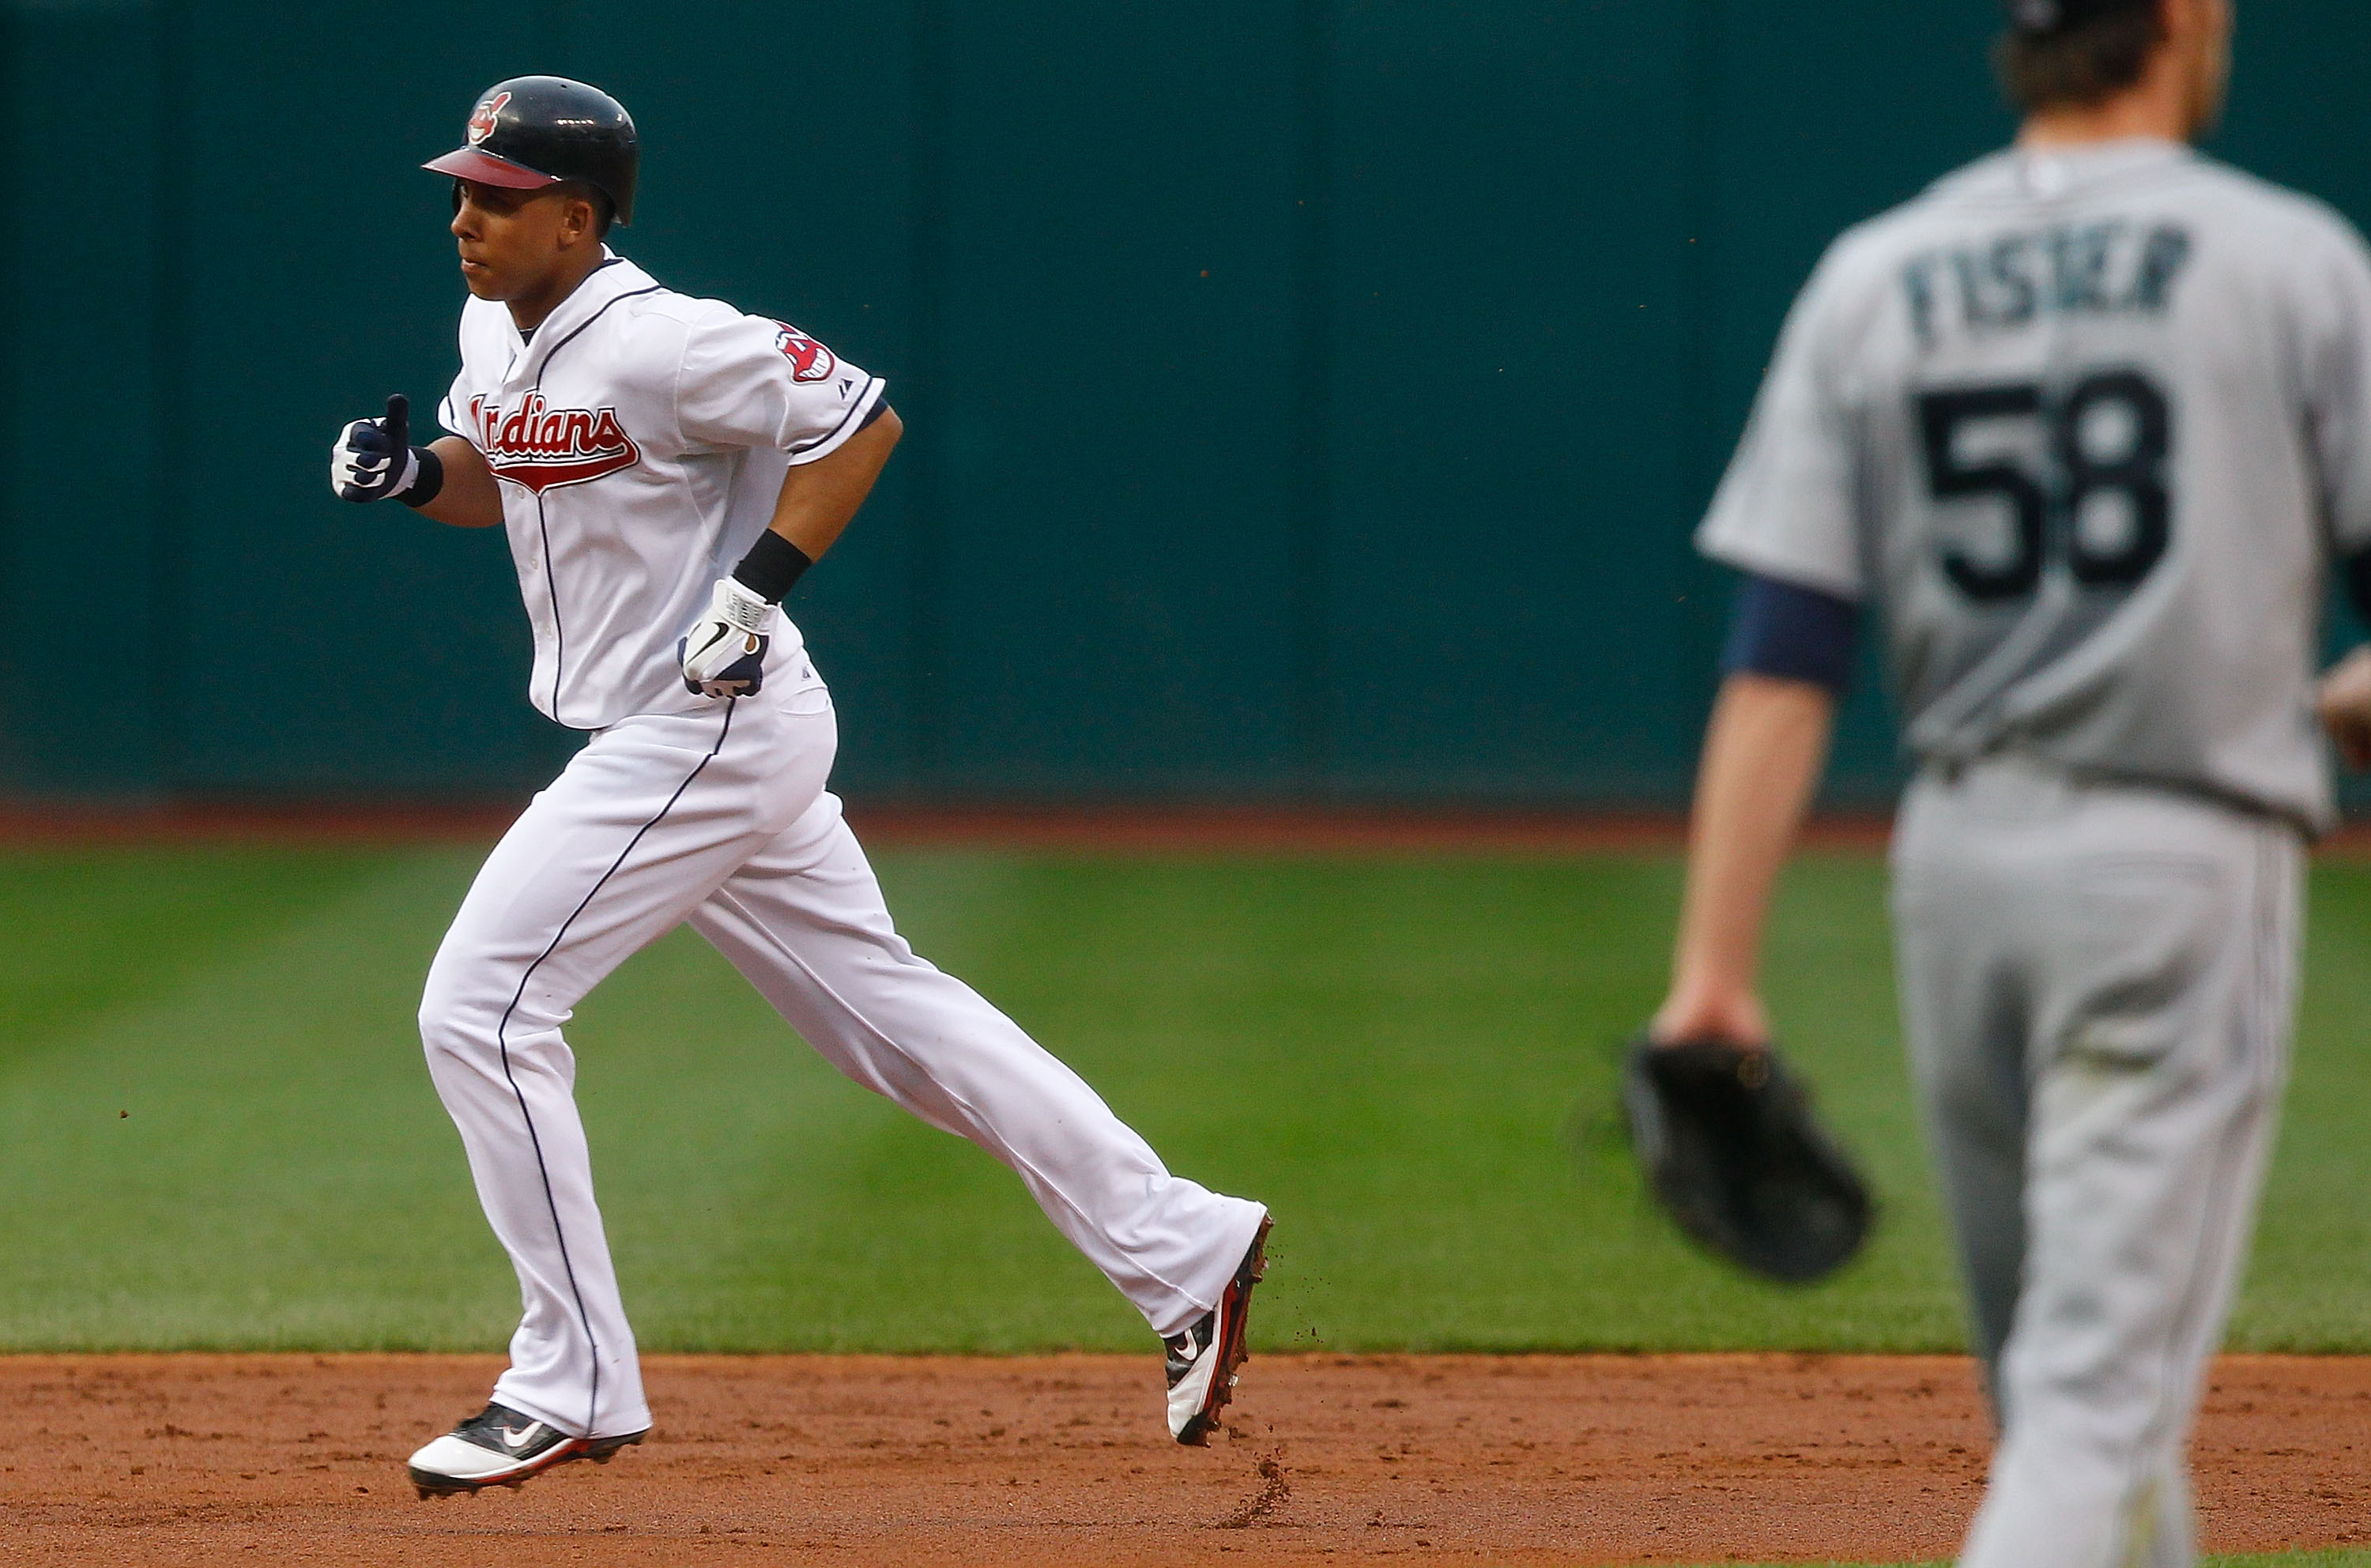 CLEVELAND - MAY 13:  Michael Brantley #23 of the Cleveland Indians trots past second base after hitting a solo home run off of Doug Fister #58 of the Seattle Mariners during the game on May 13, 2011 at Progressive Field in Cleveland, Ohio.  (Photo by Jare